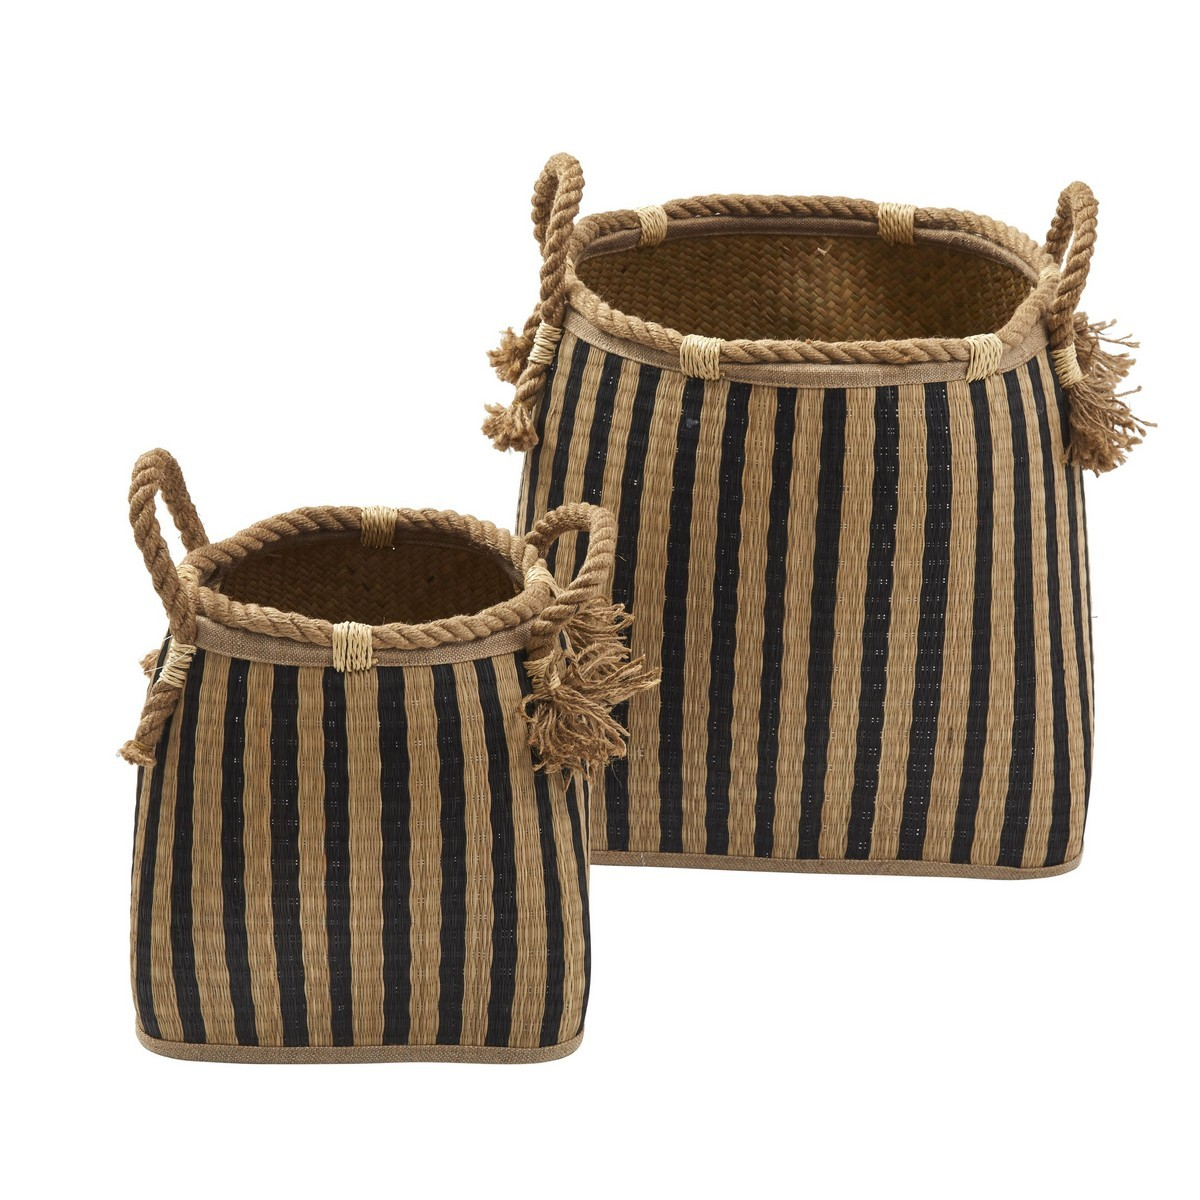 Nantego 2 Piece Seagrass Basket Set